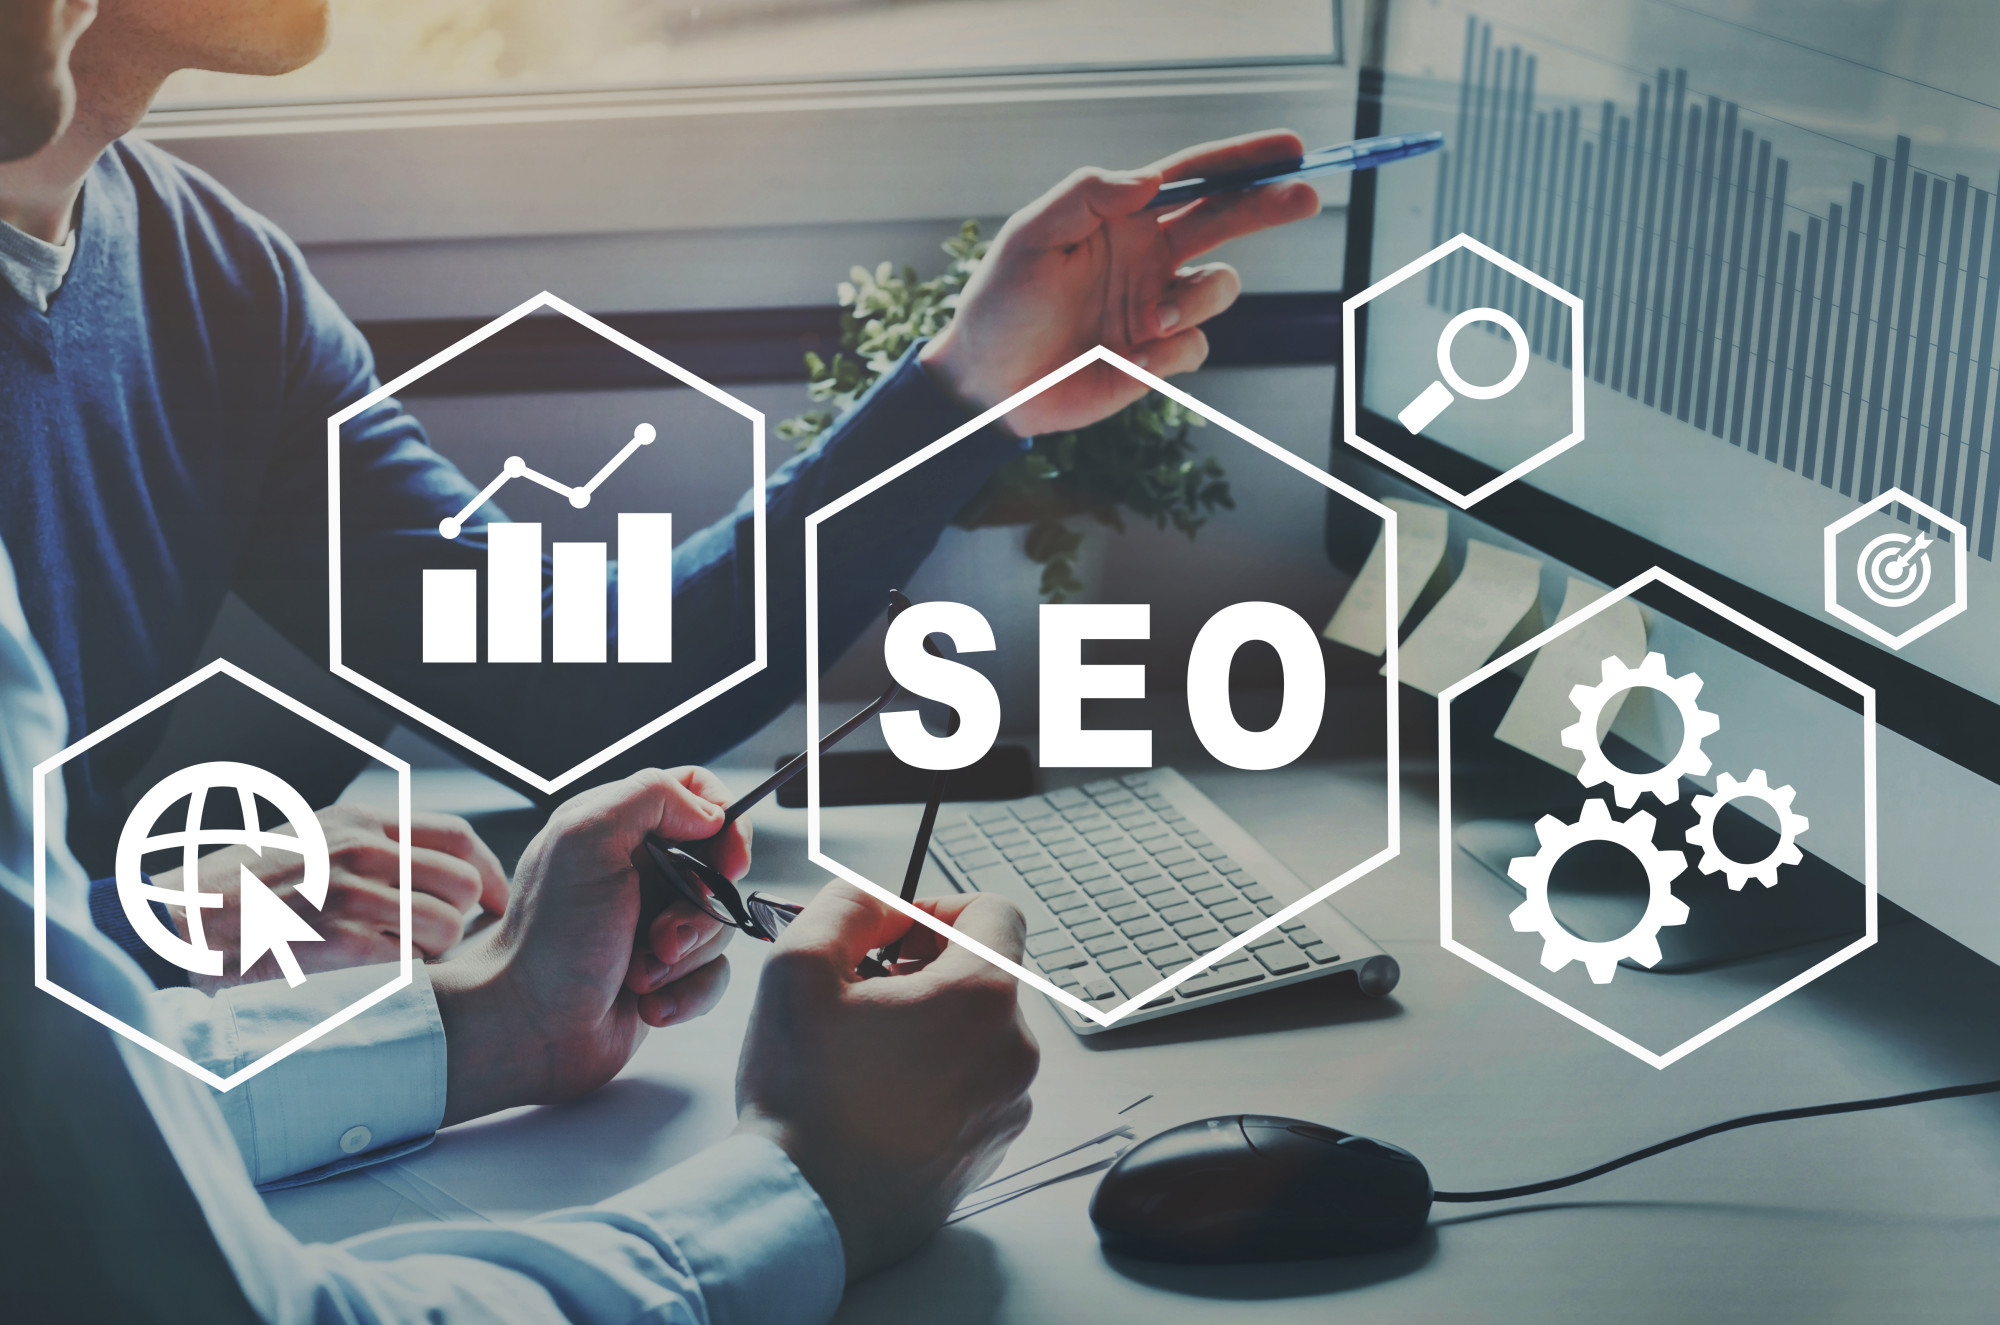 SEO for growth